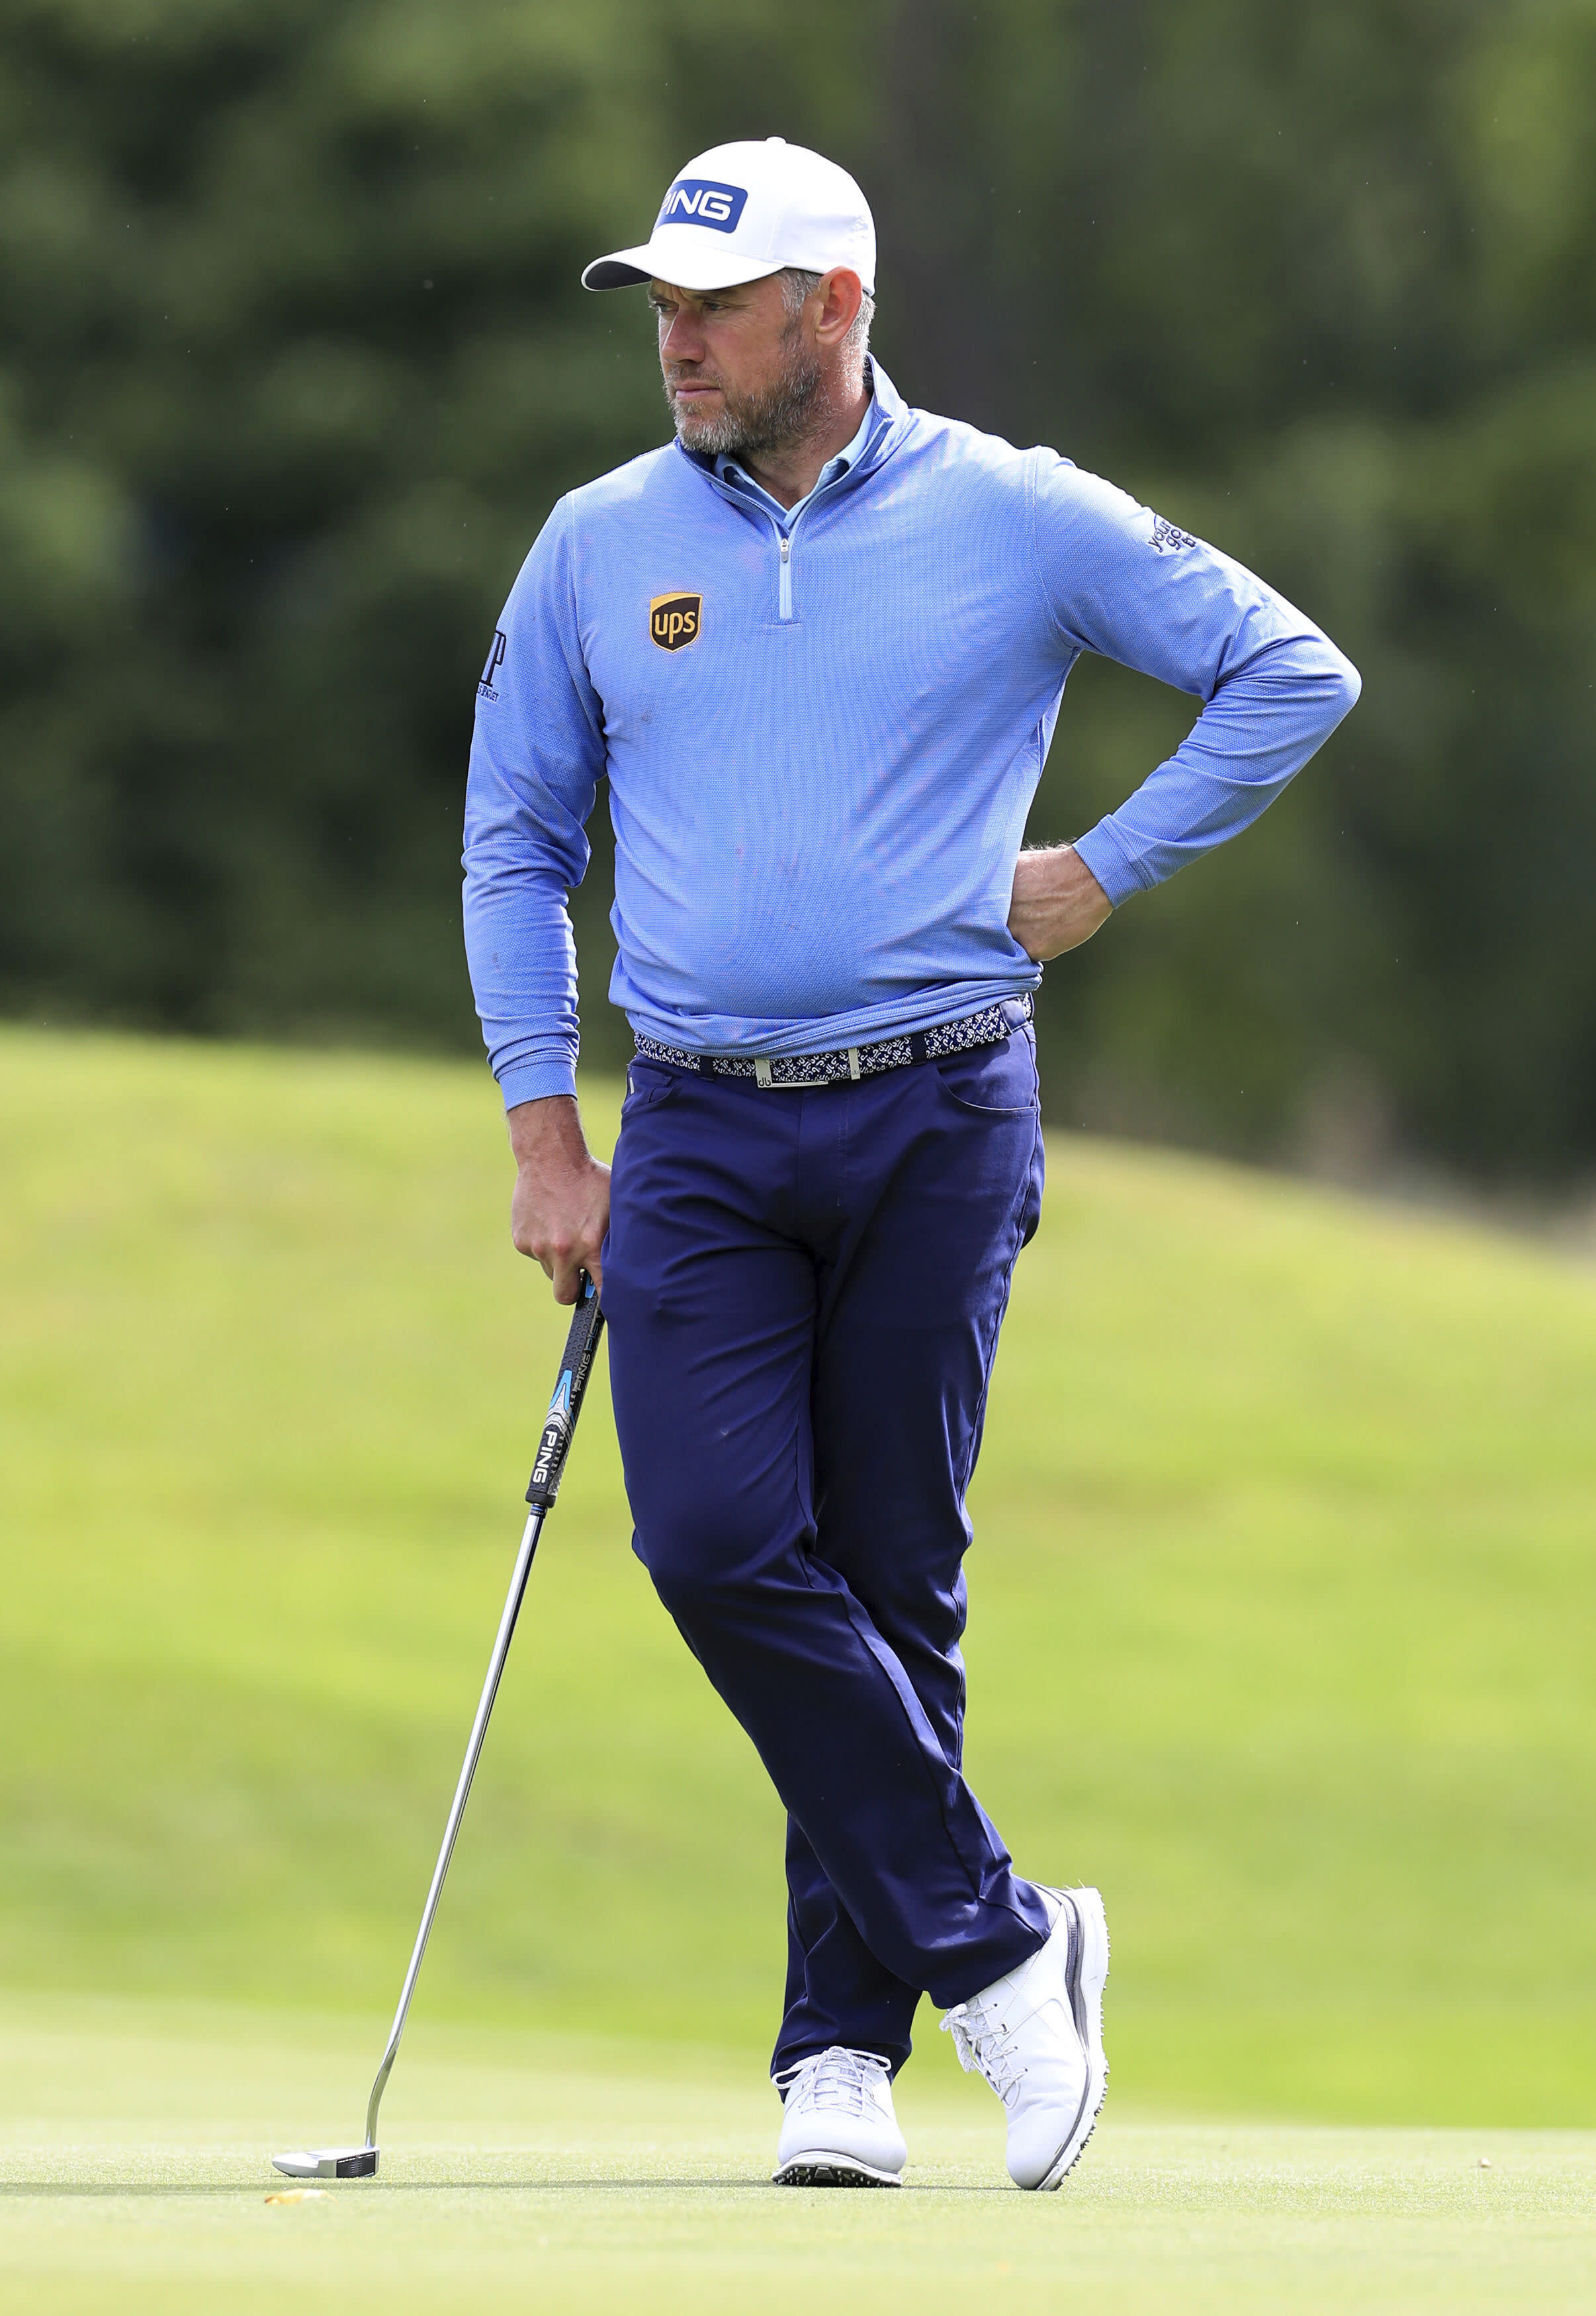 England's Lee Westwood during day four of the British Masters golf tournament at Close House Golf Club, Newcastle, England, Saturday July 25, 2020. (Mike Egerton/PA via AP)